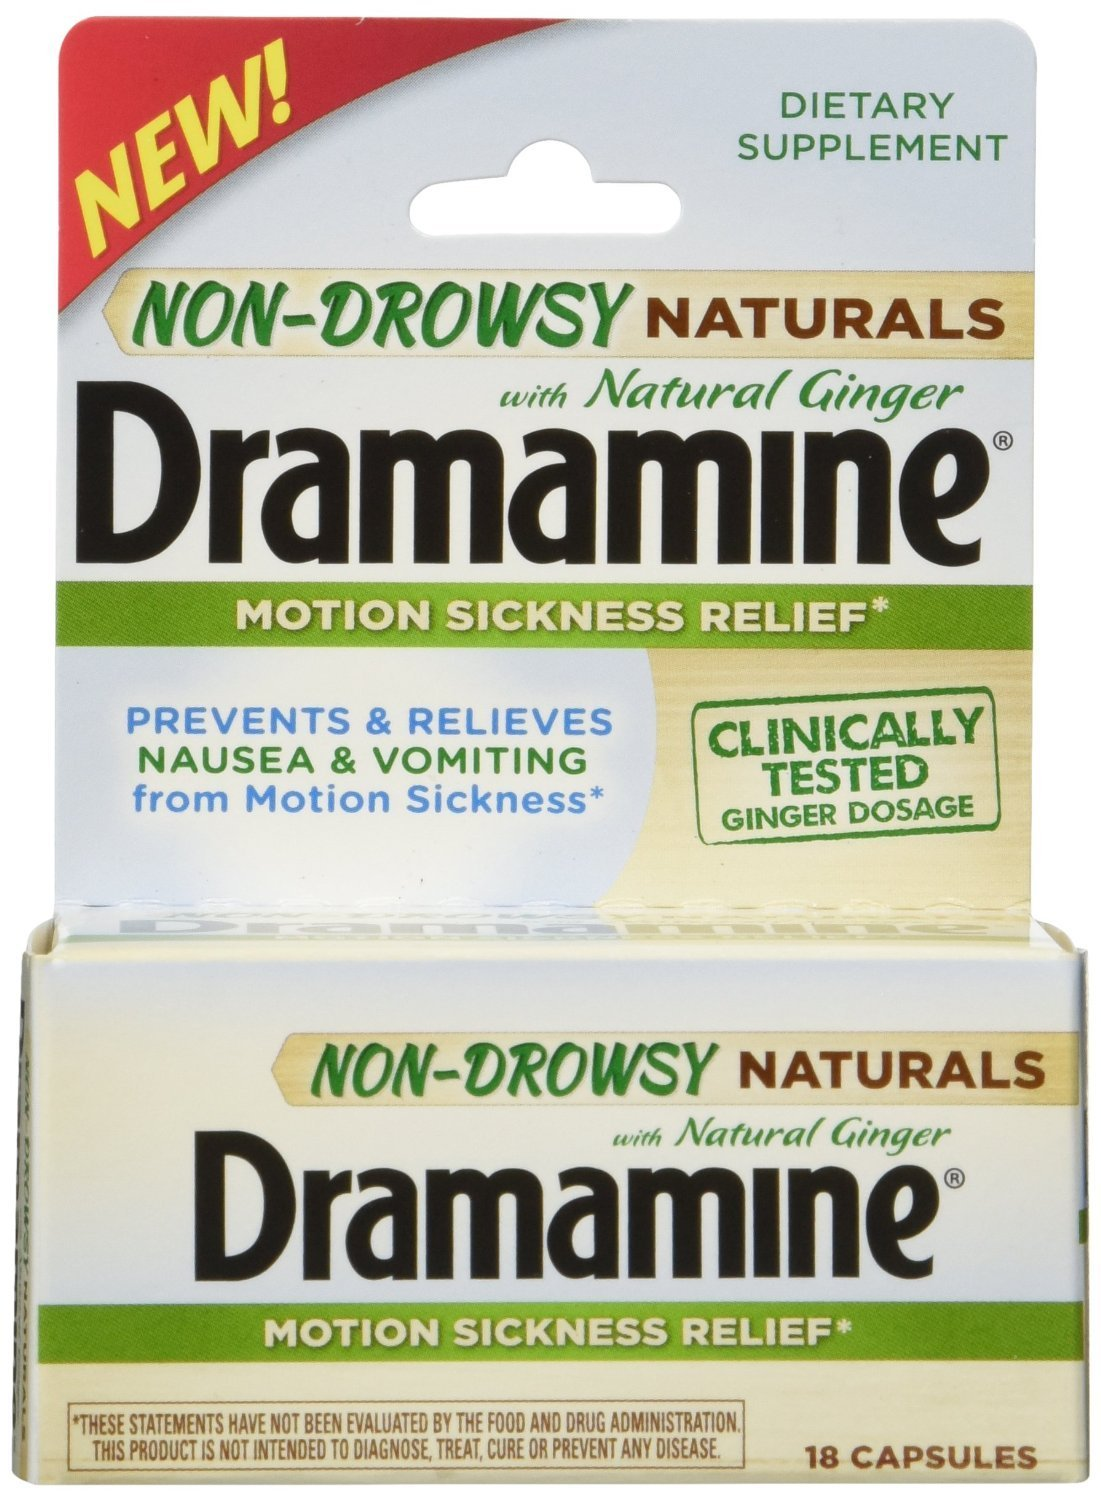 Dramamine Non-Drowsy Naturals with Natural Ginger, 18 Count (Pack of 2) by Dramamine